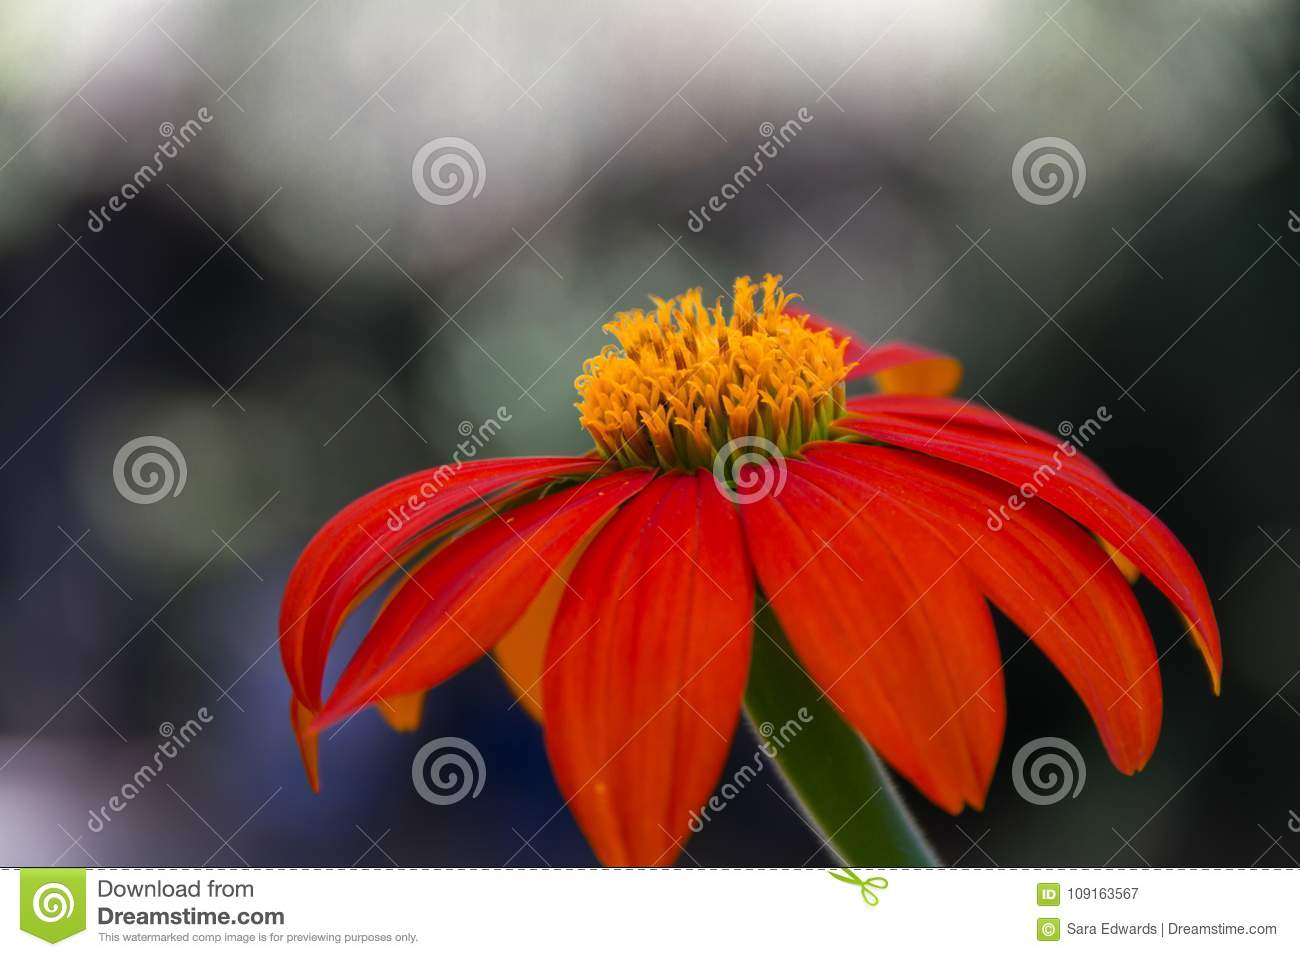 A Beautiful Dark Orange Flower With Yellow Center In Front Of A